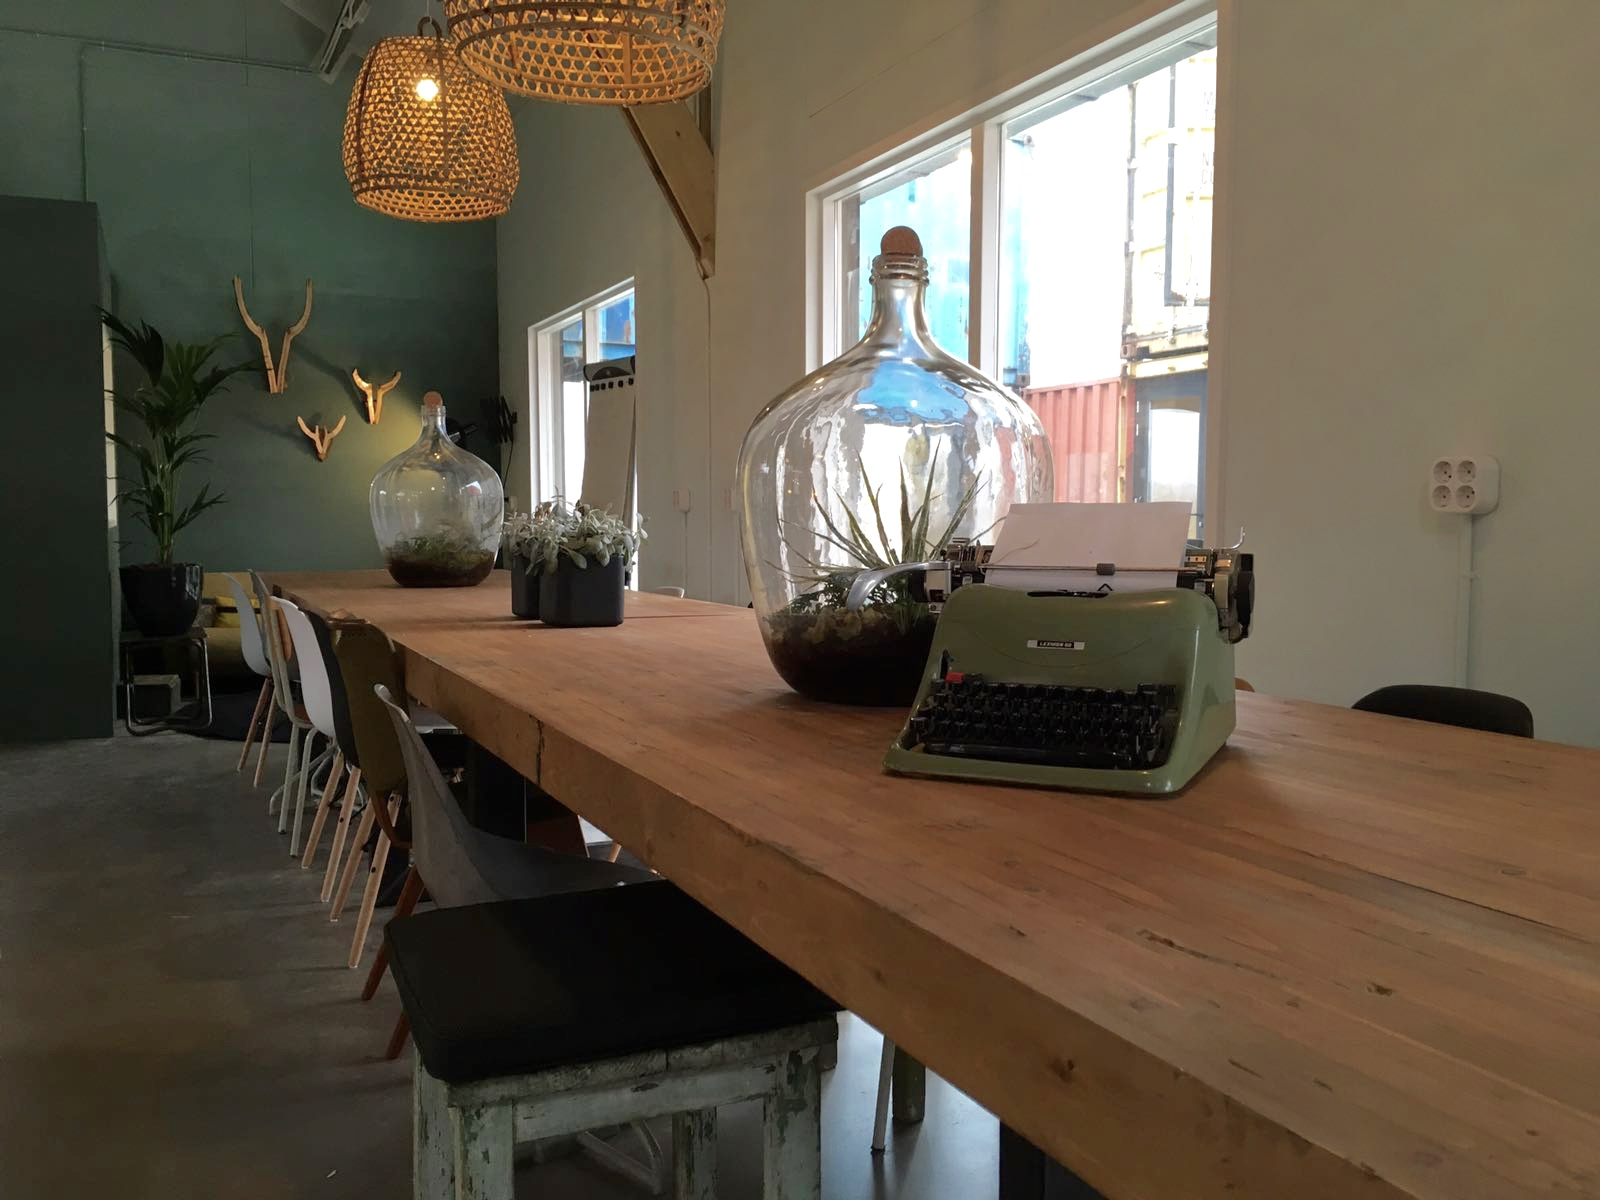 interieurconcept start up village co-workingspace Amsterdam Puur styling Rianne Timmer Vos